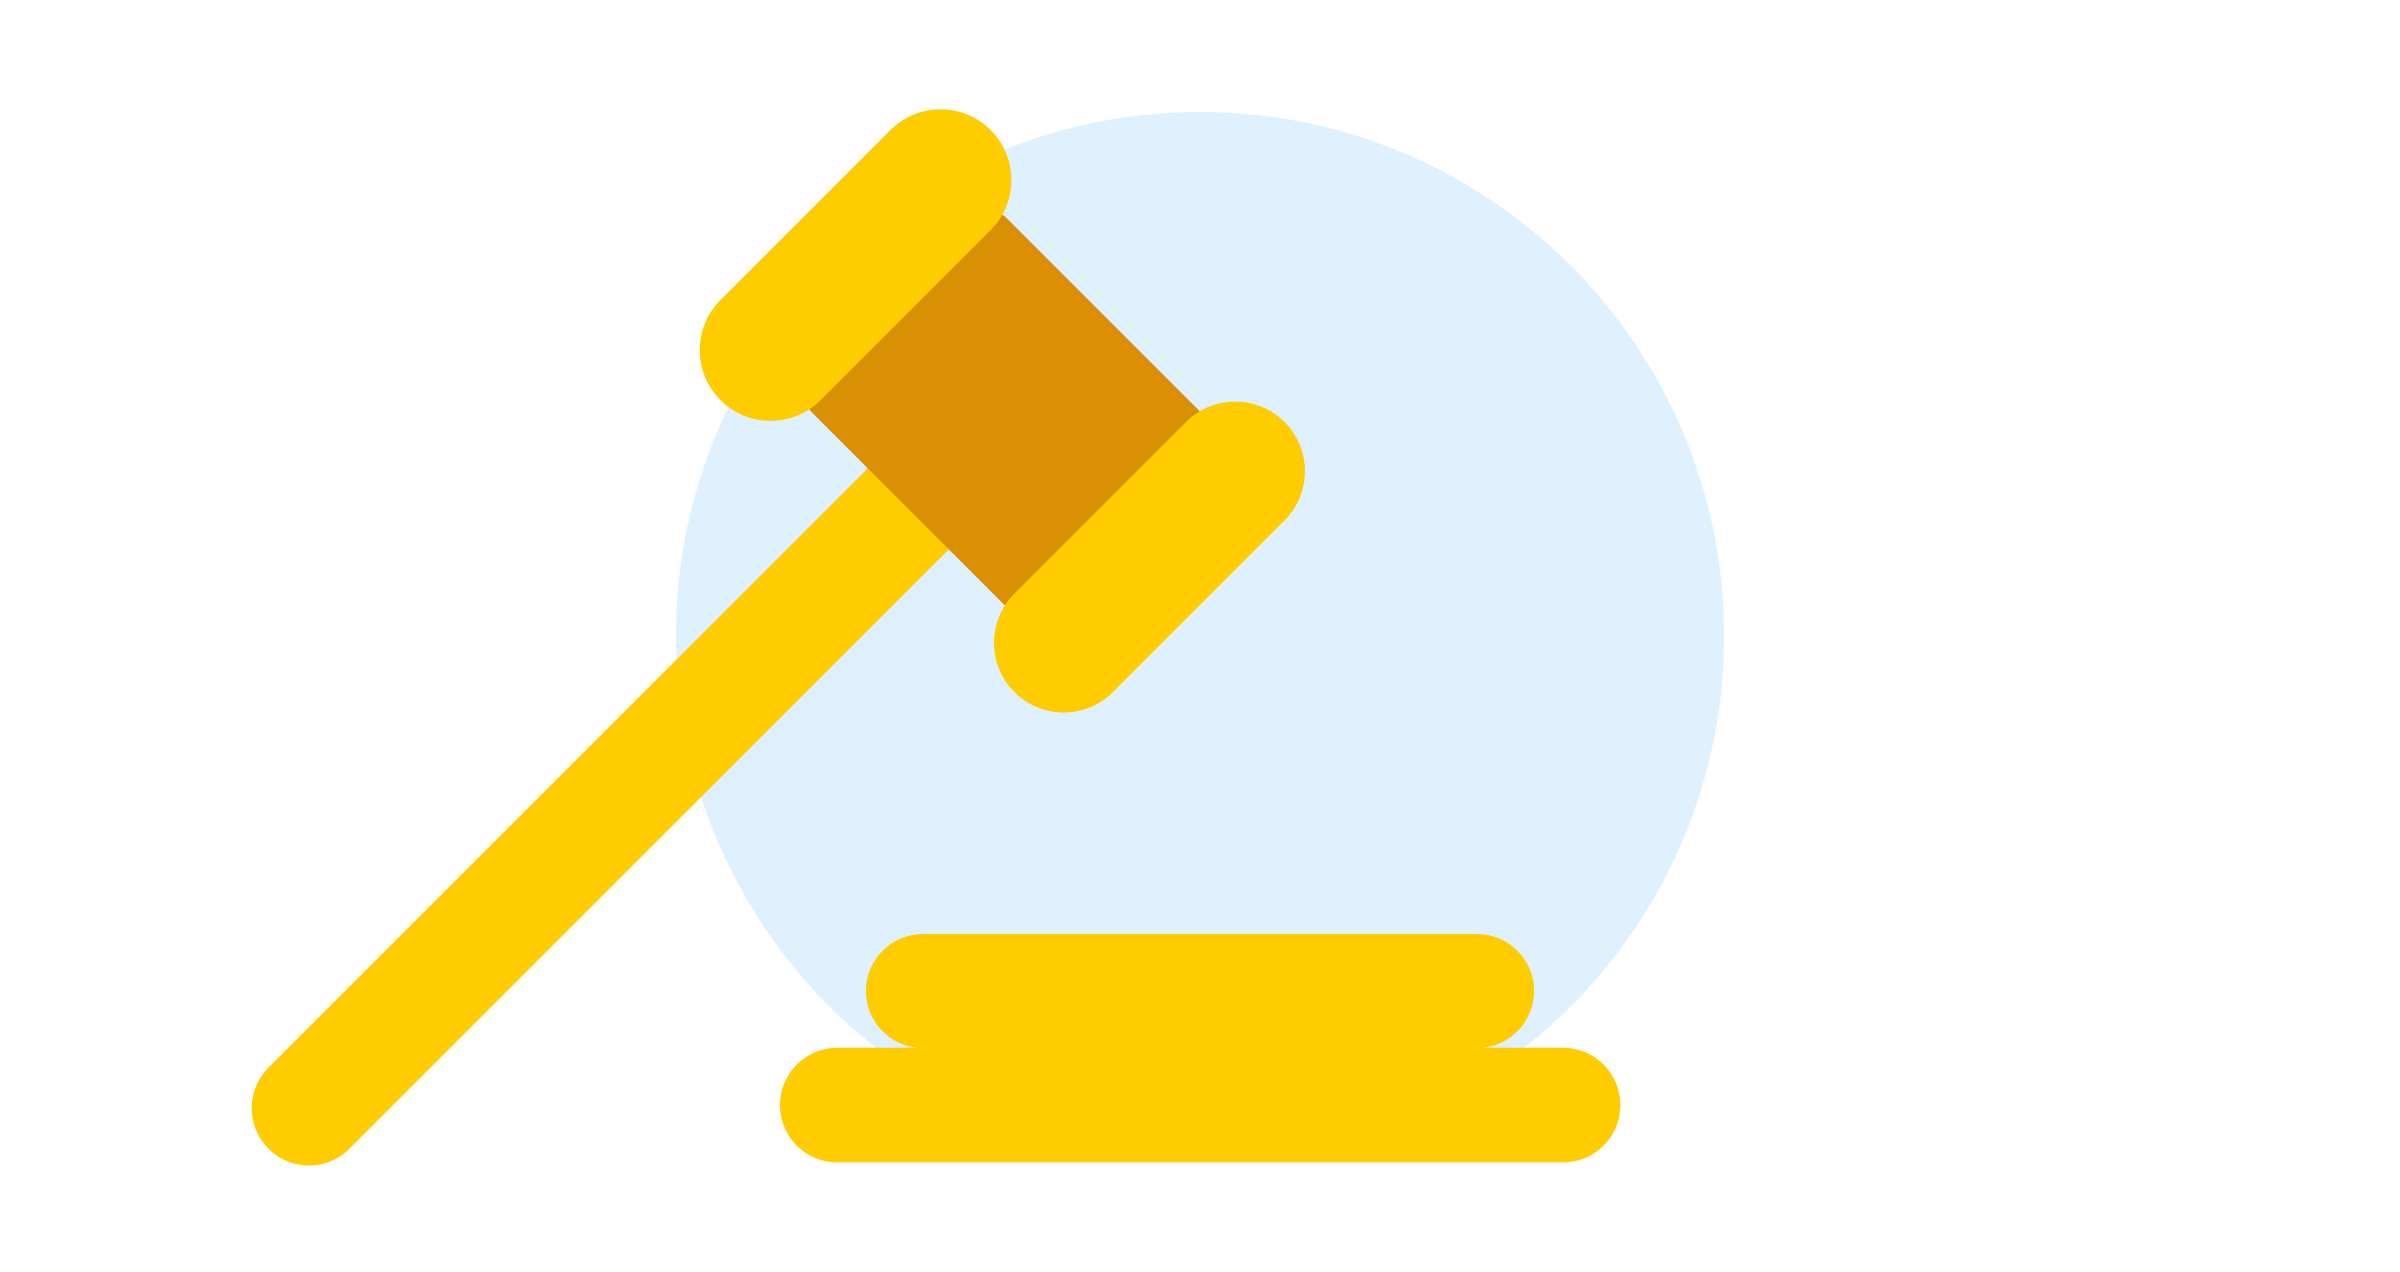 An illustrated gavel